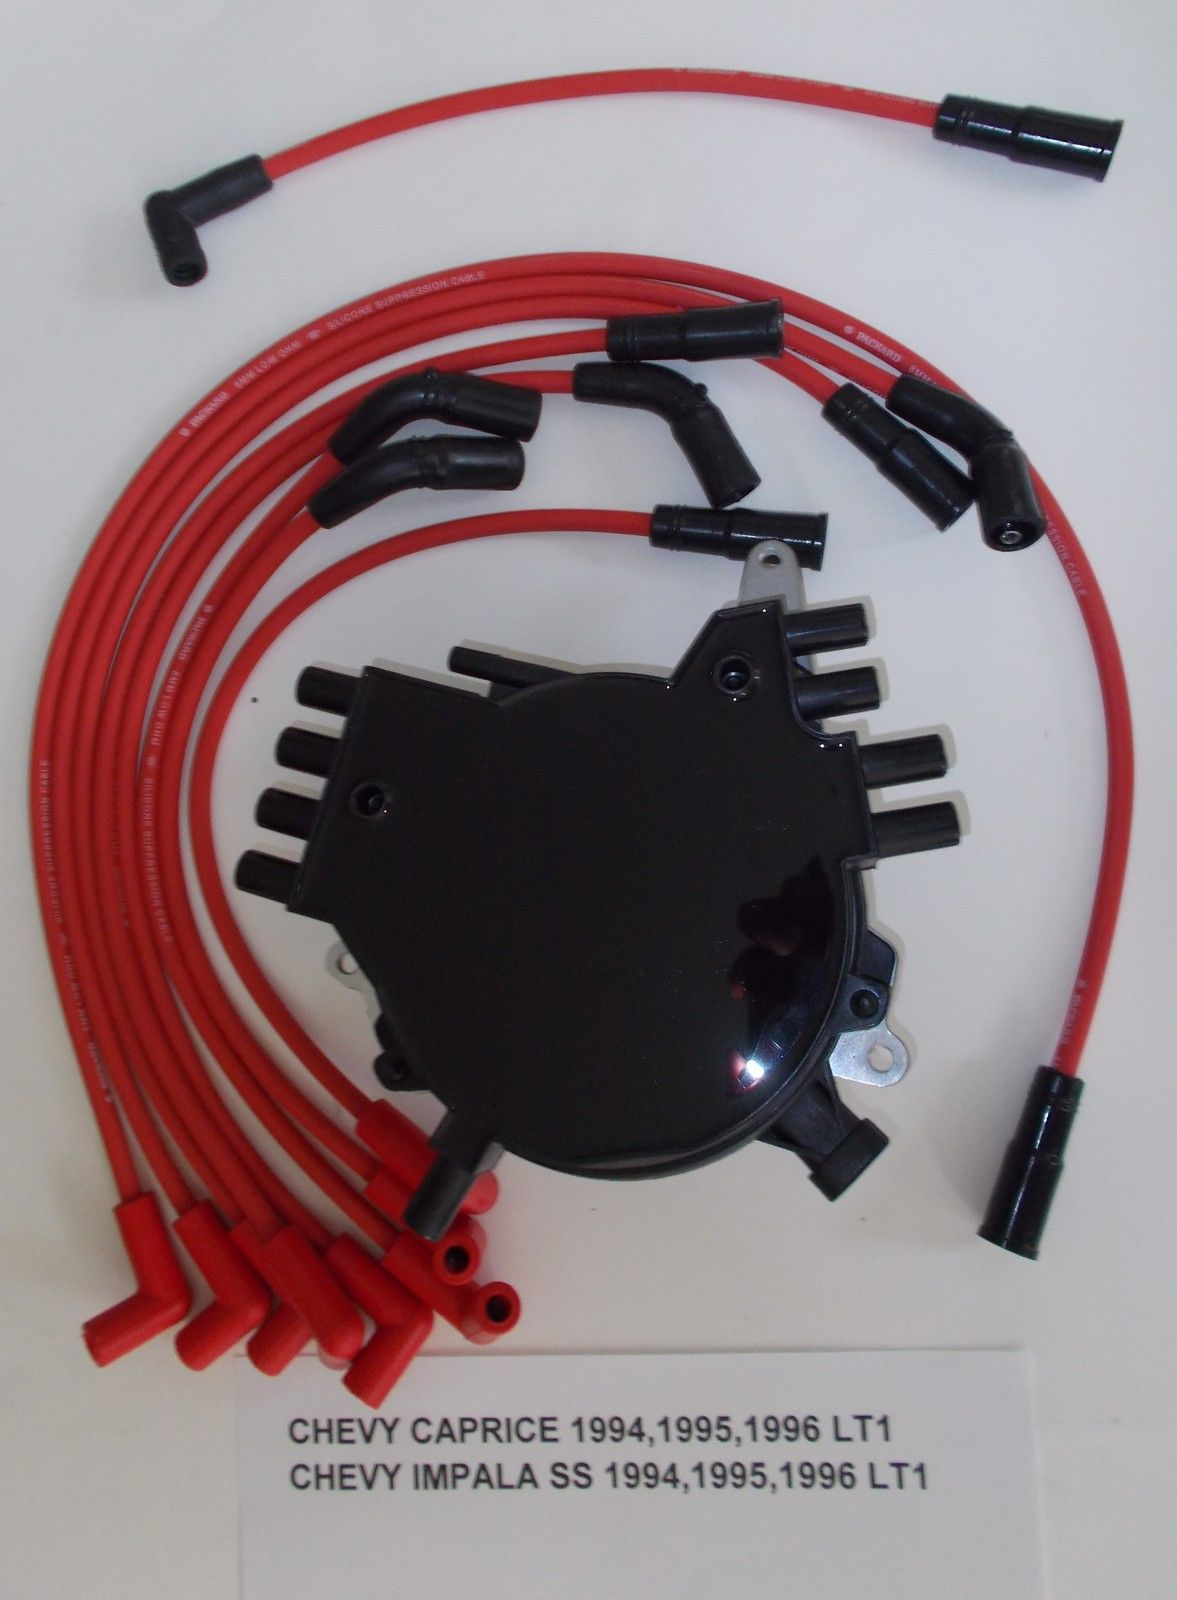 96 lt1 wiring harness location chevy caprice impala 94 96 lt1 5 7l optispark distributor and red  chevy caprice impala 94 96 lt1 5 7l